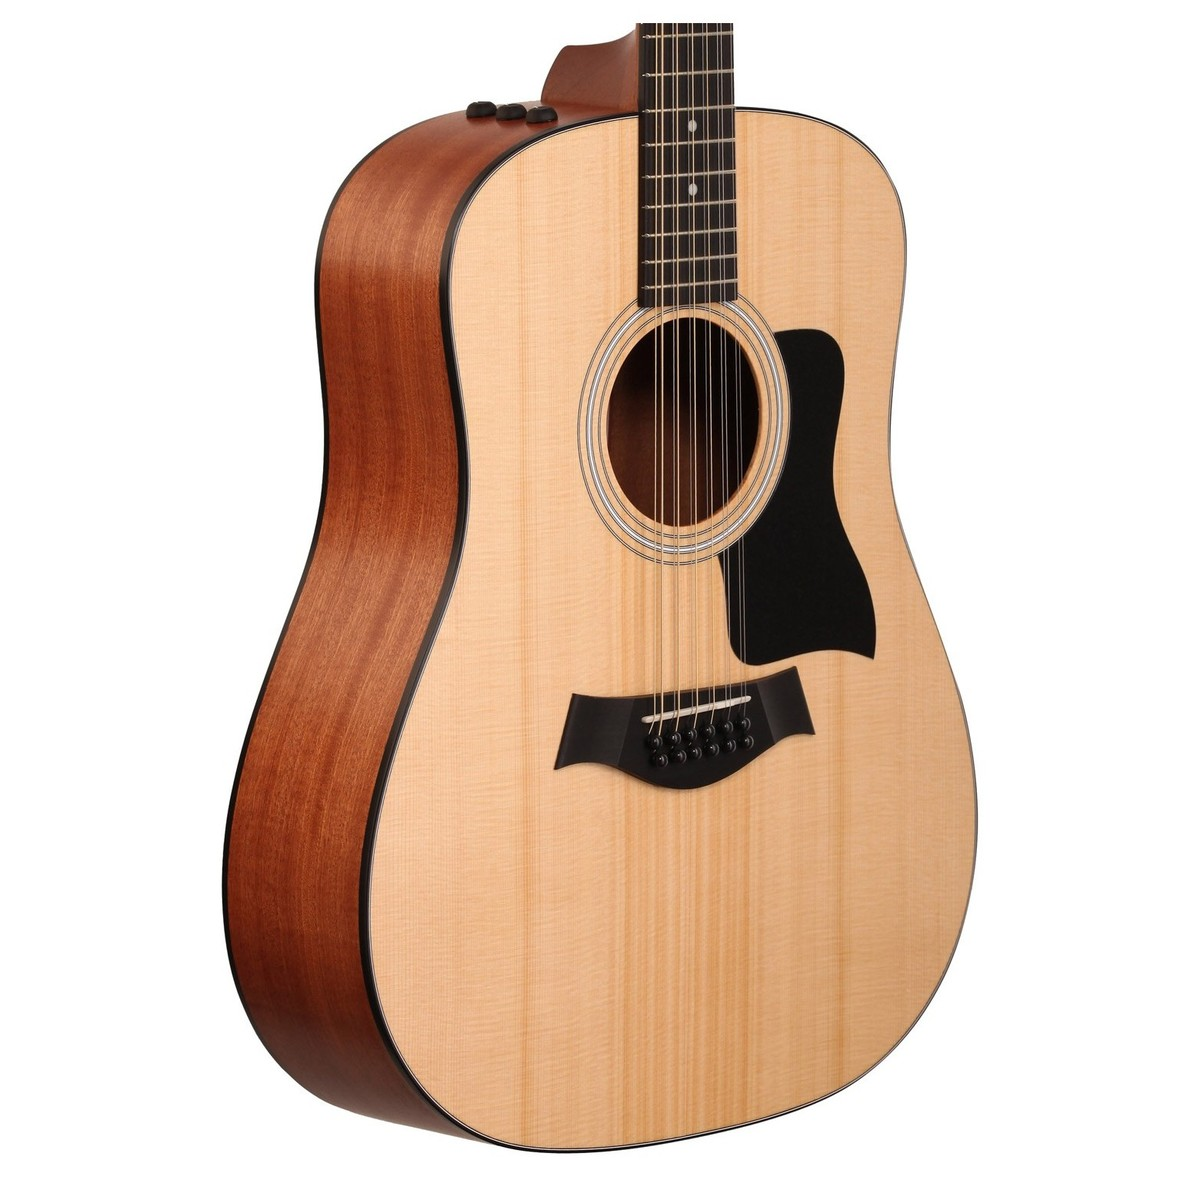 Taylor 150e 12 String : taylor 150e 12 string dreadnought electro acoustic guitar natural at ~ Hamham.info Haus und Dekorationen